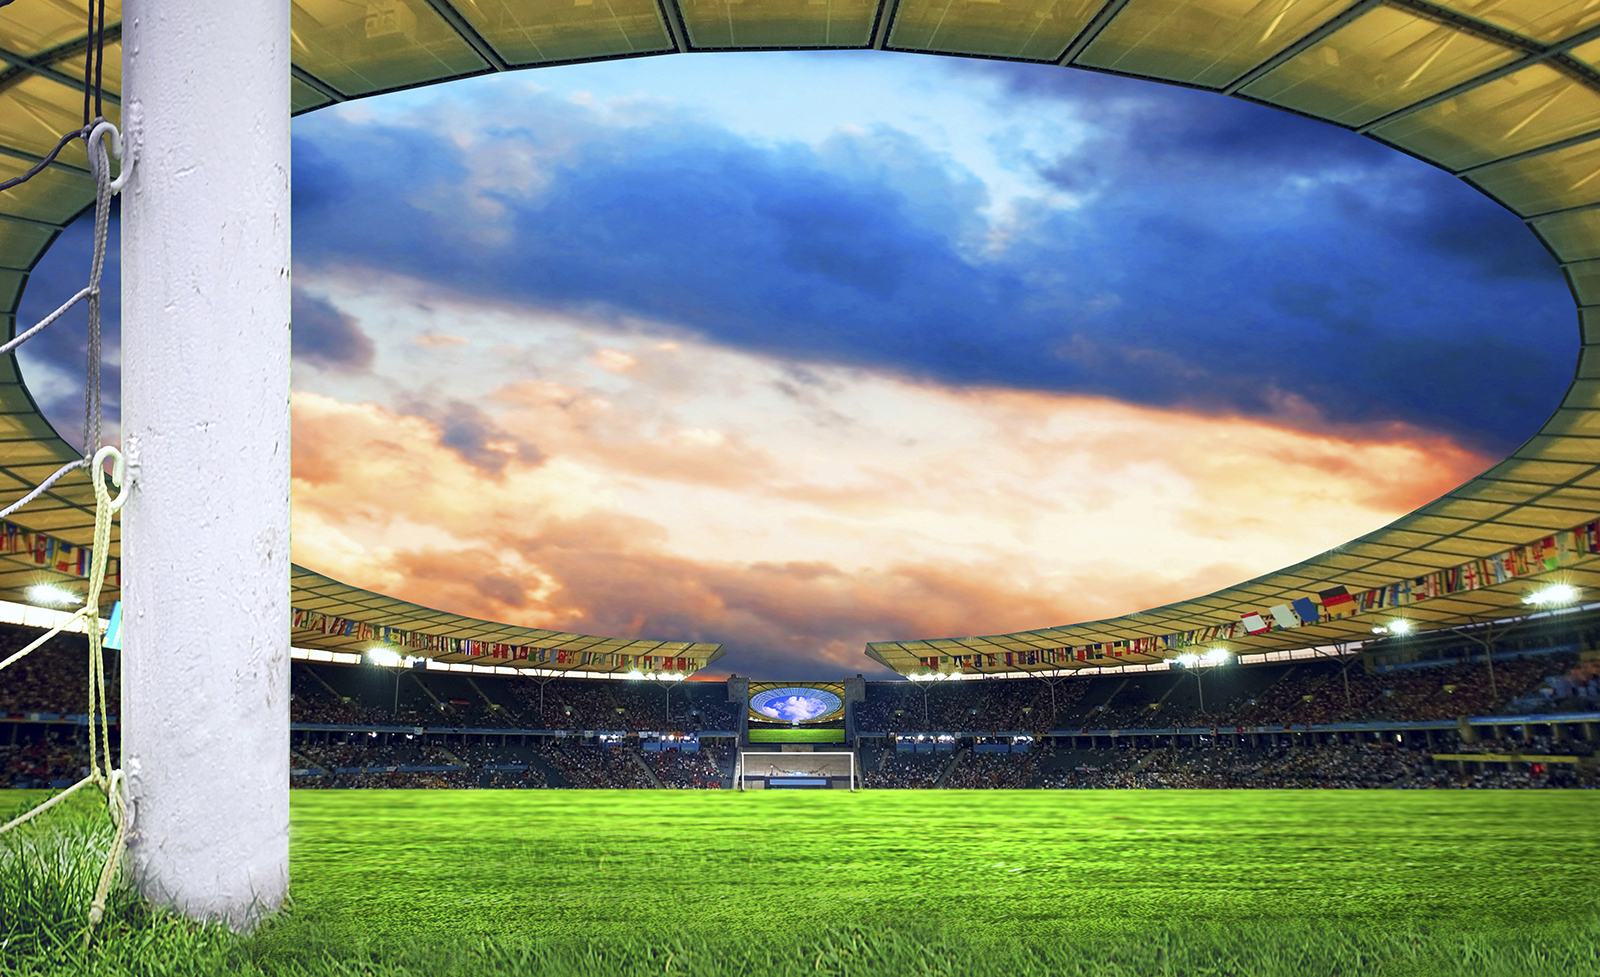 Details about Football Stadium Boys Bedroom PHOTO WALLPAPER PICTURE 1600x977